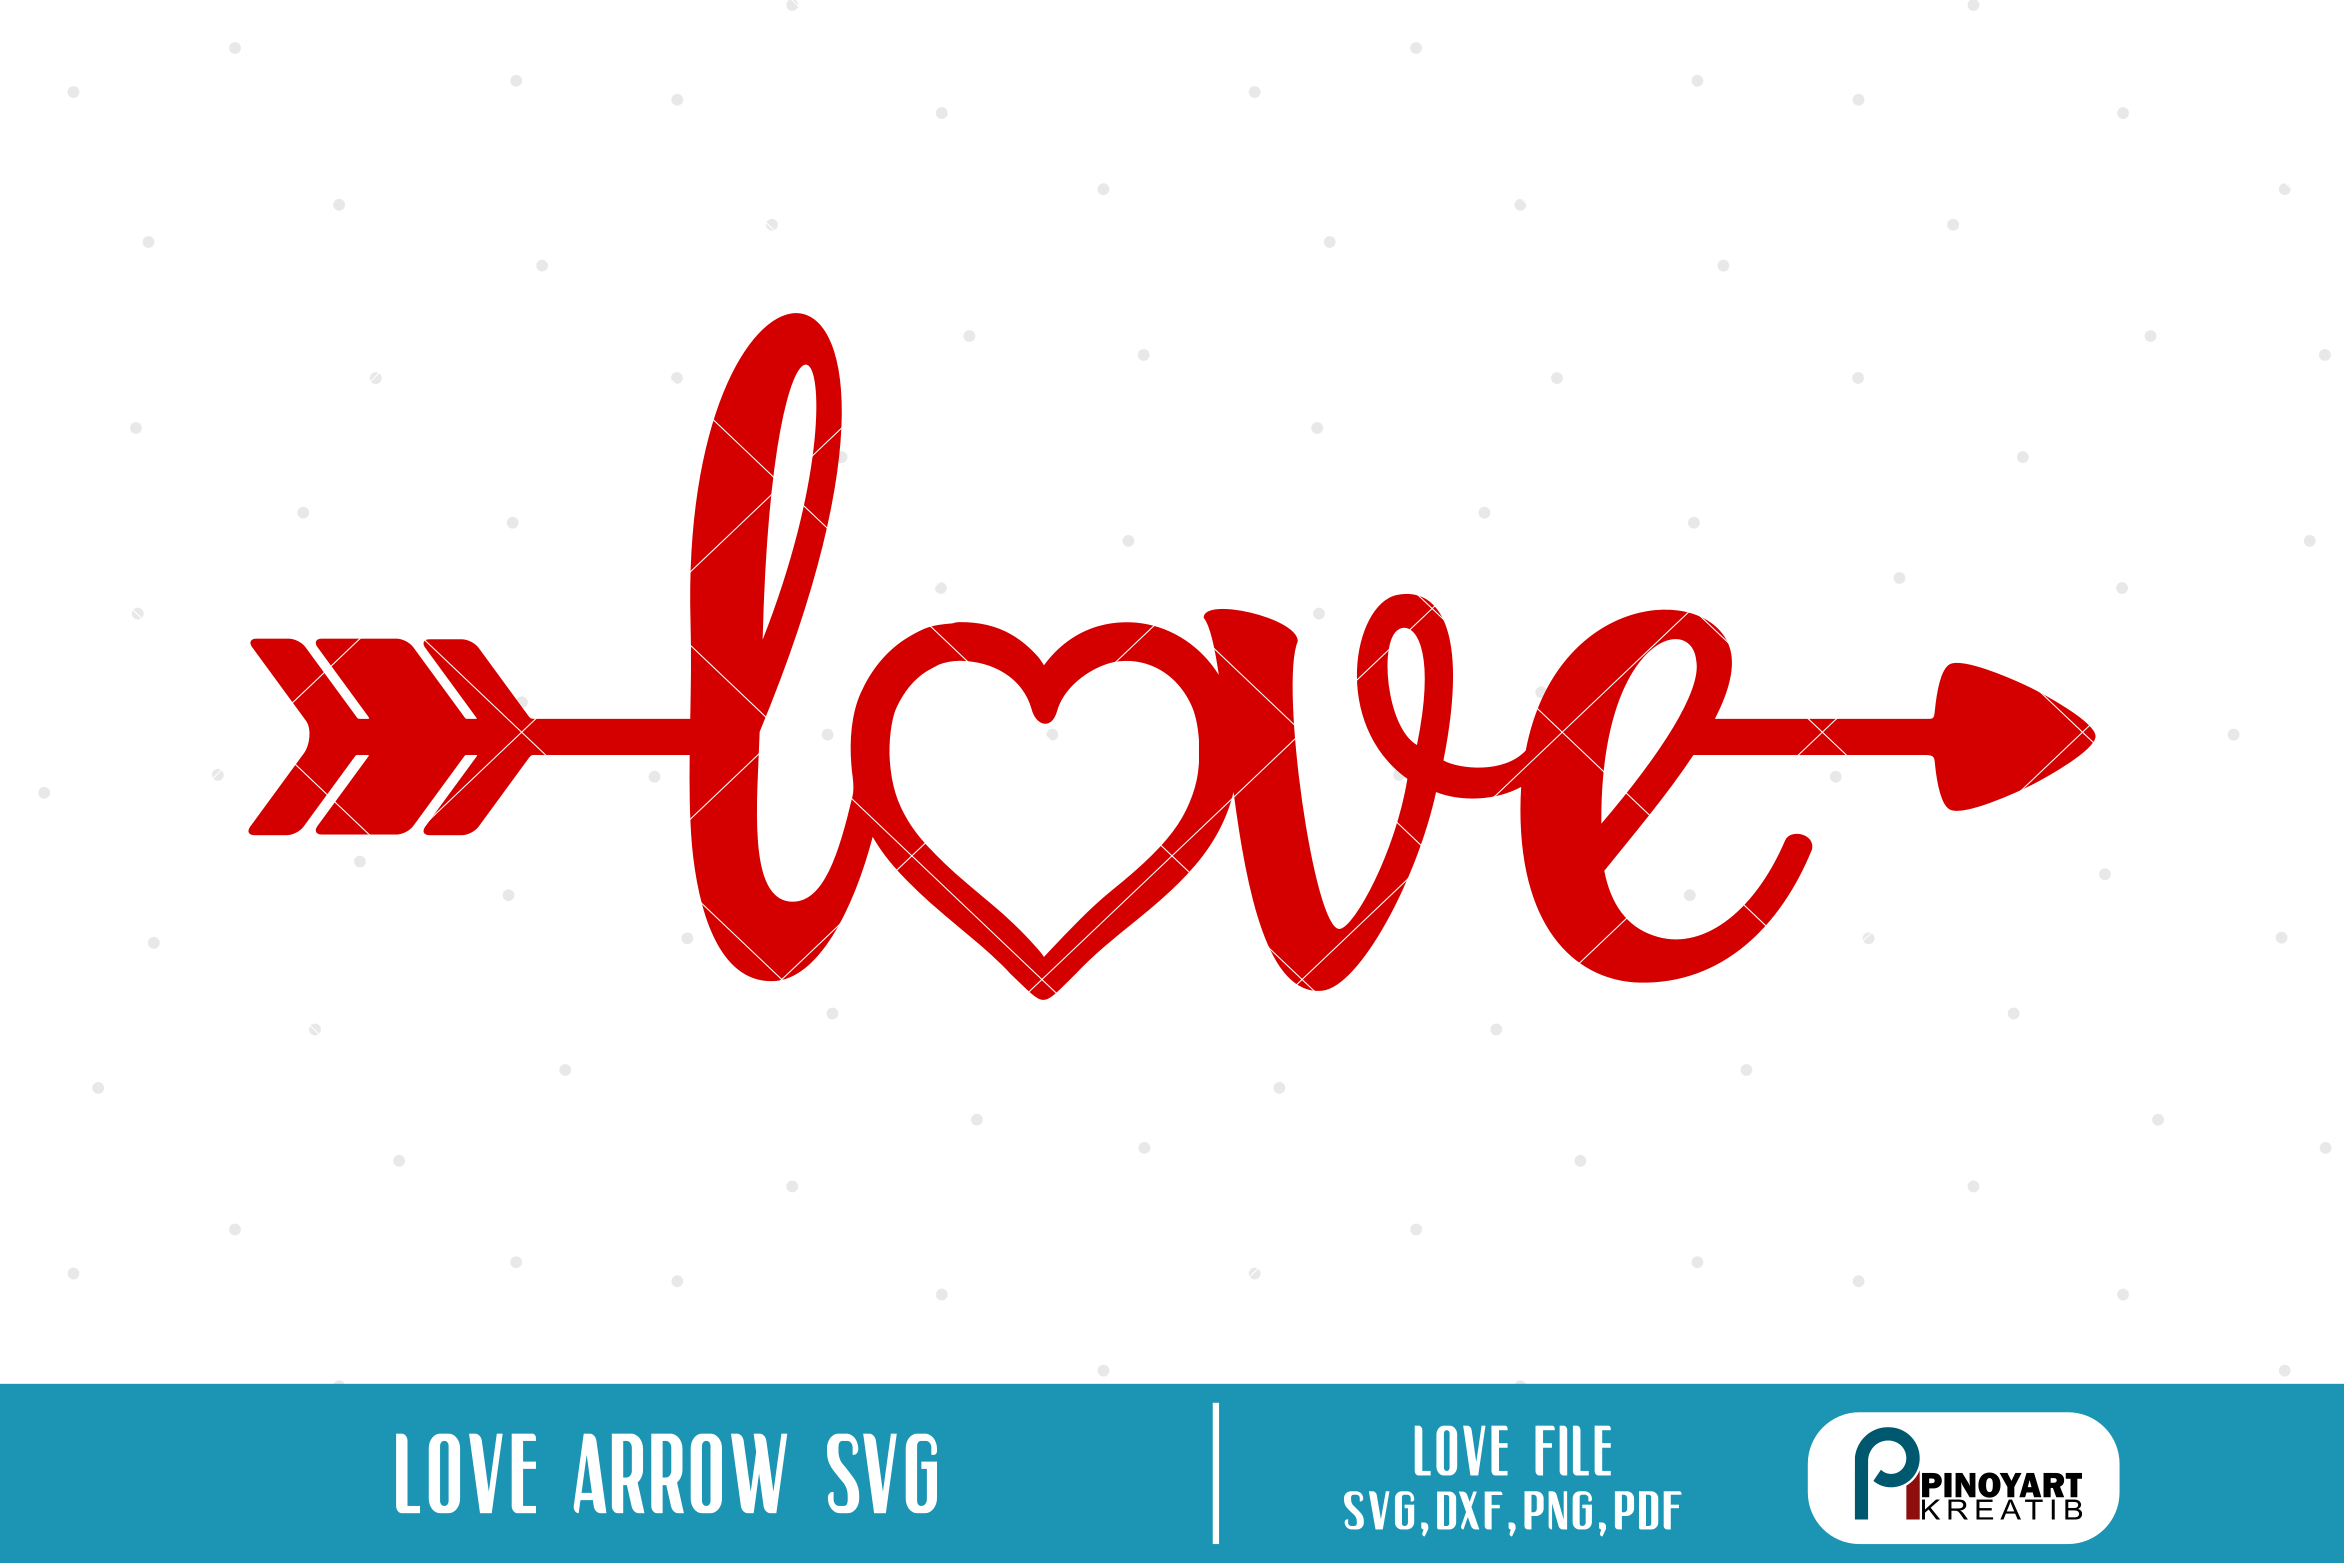 Download Free Love Arrow Graphic By Pinoyartkreatib Creative Fabrica for Cricut Explore, Silhouette and other cutting machines.